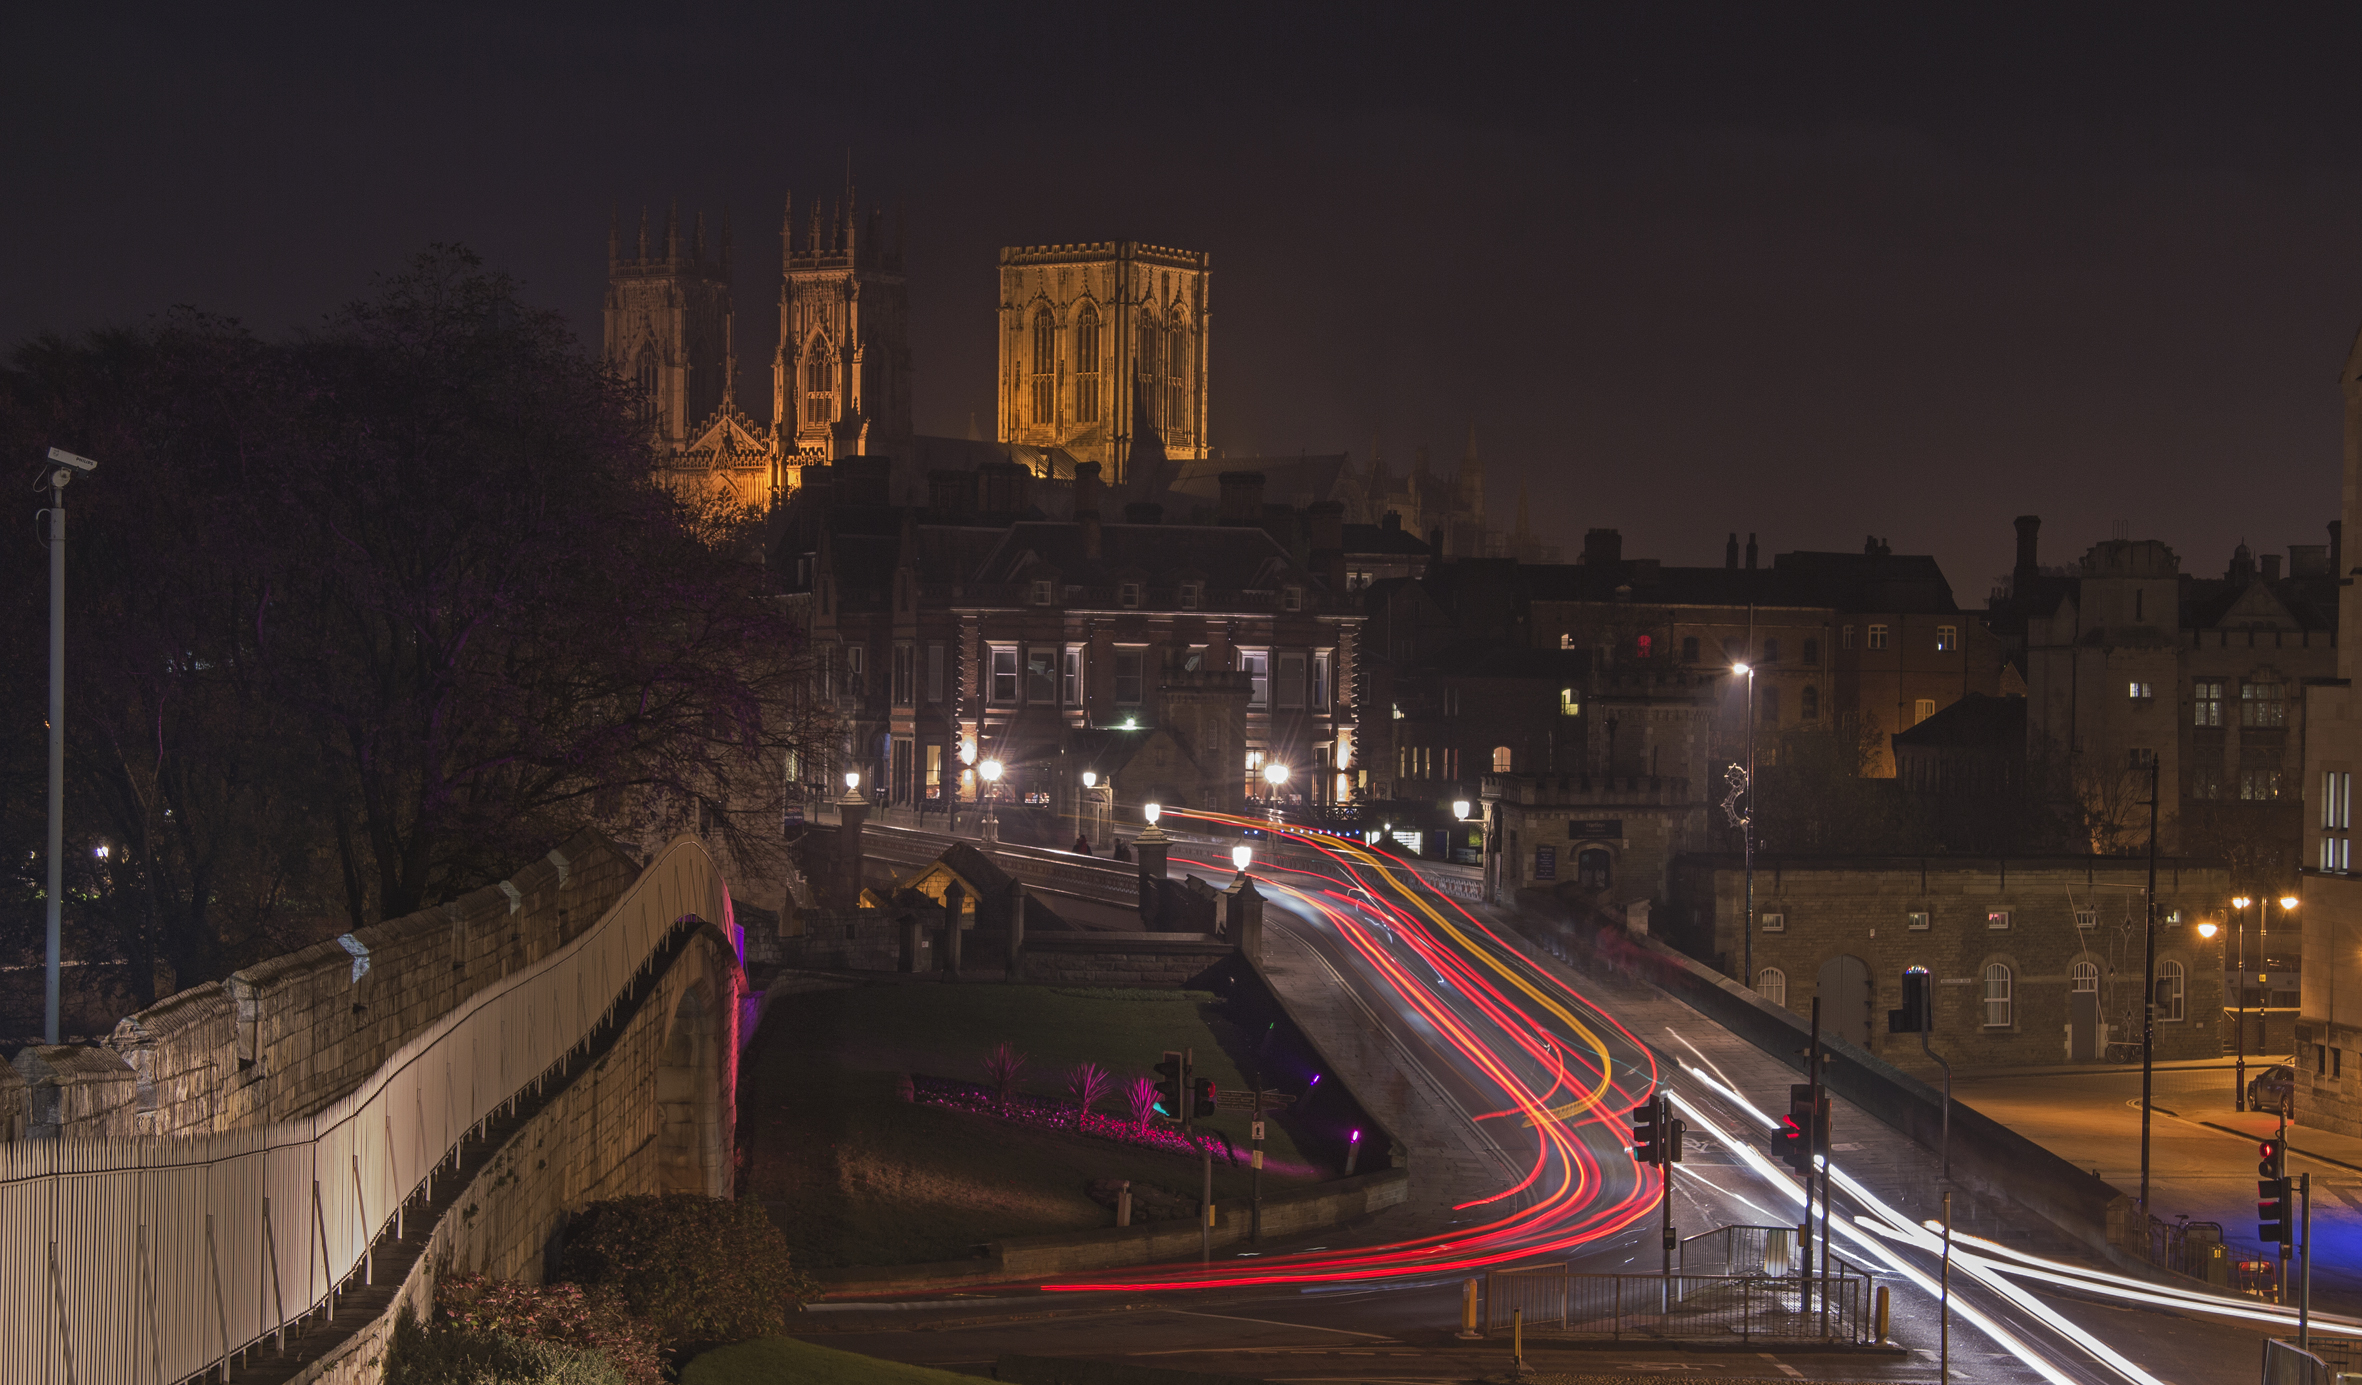 Traffic trail version of the iconic image of York